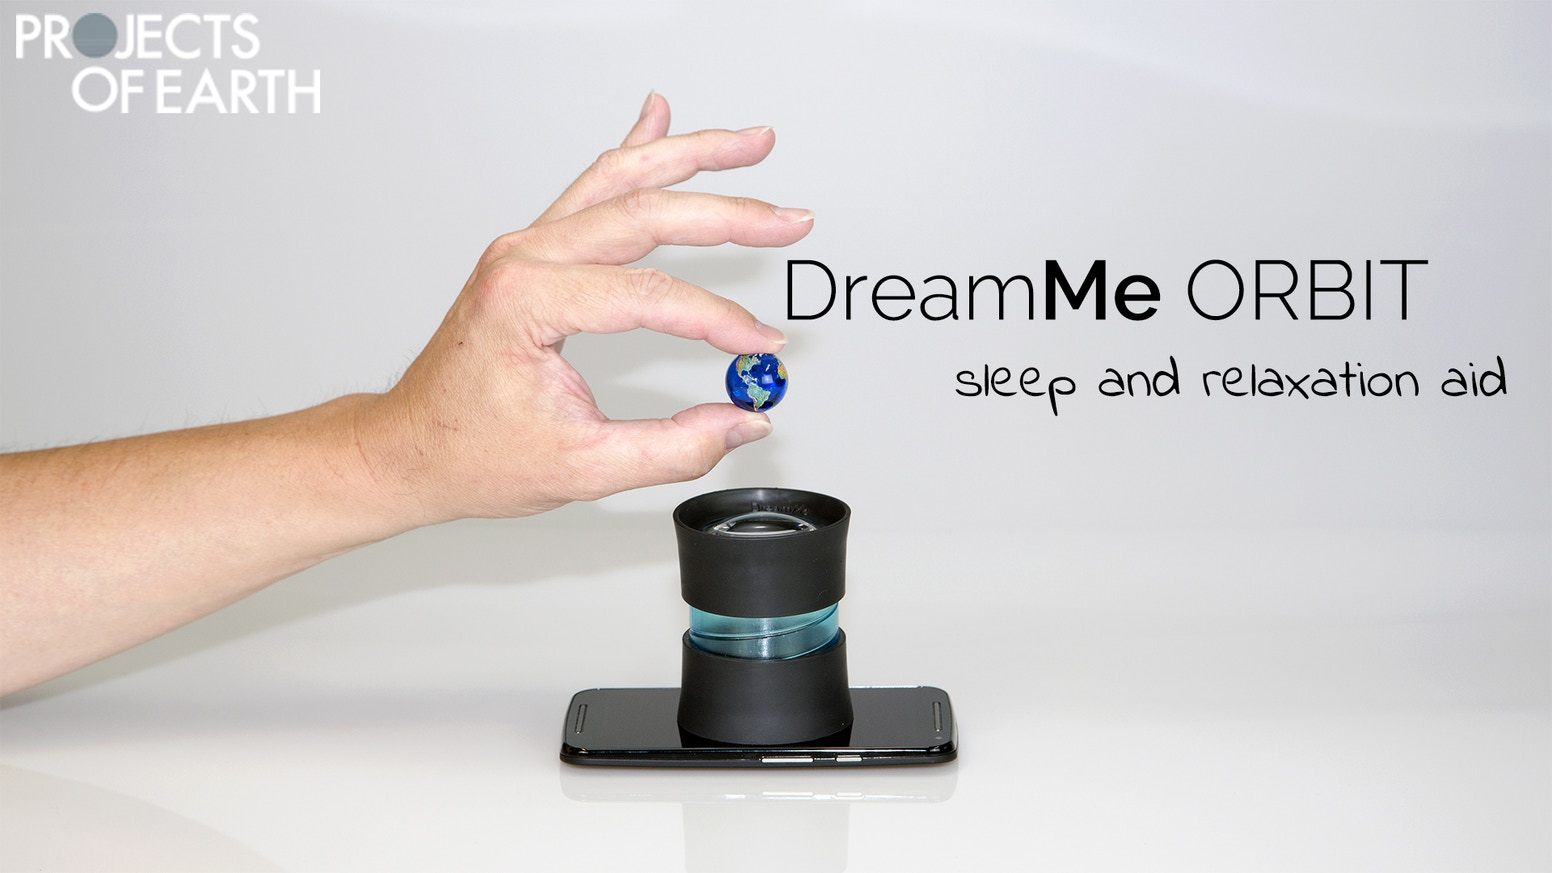 DreamMe ORBIT sleep&relaxation aid - mobile phone projector by